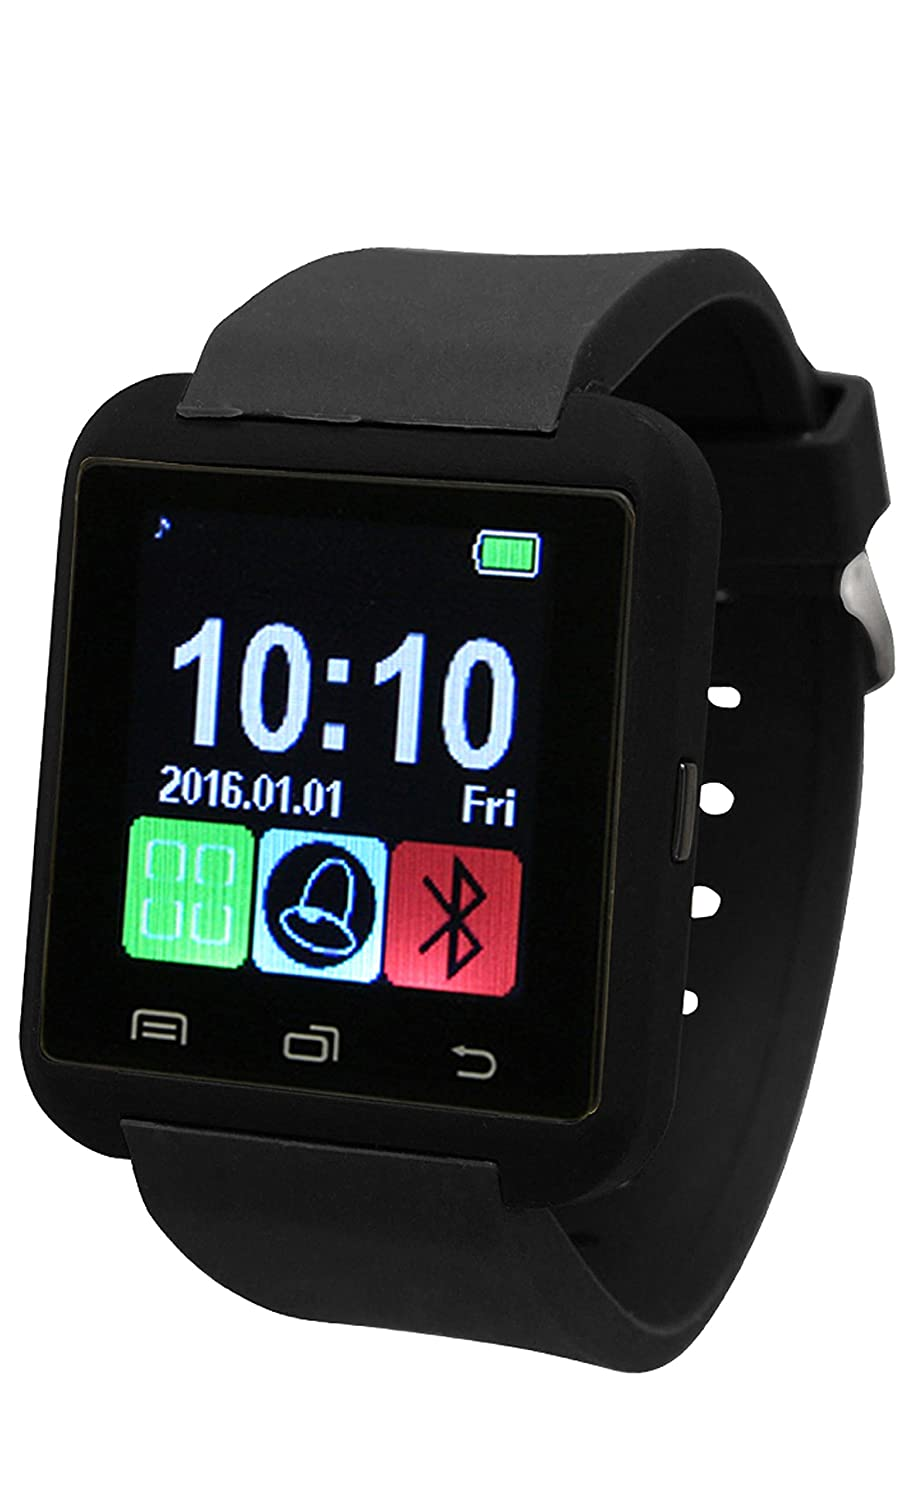 Amazon.com : Fashion Smart Watch U8 Phone Mate Pedometer ...